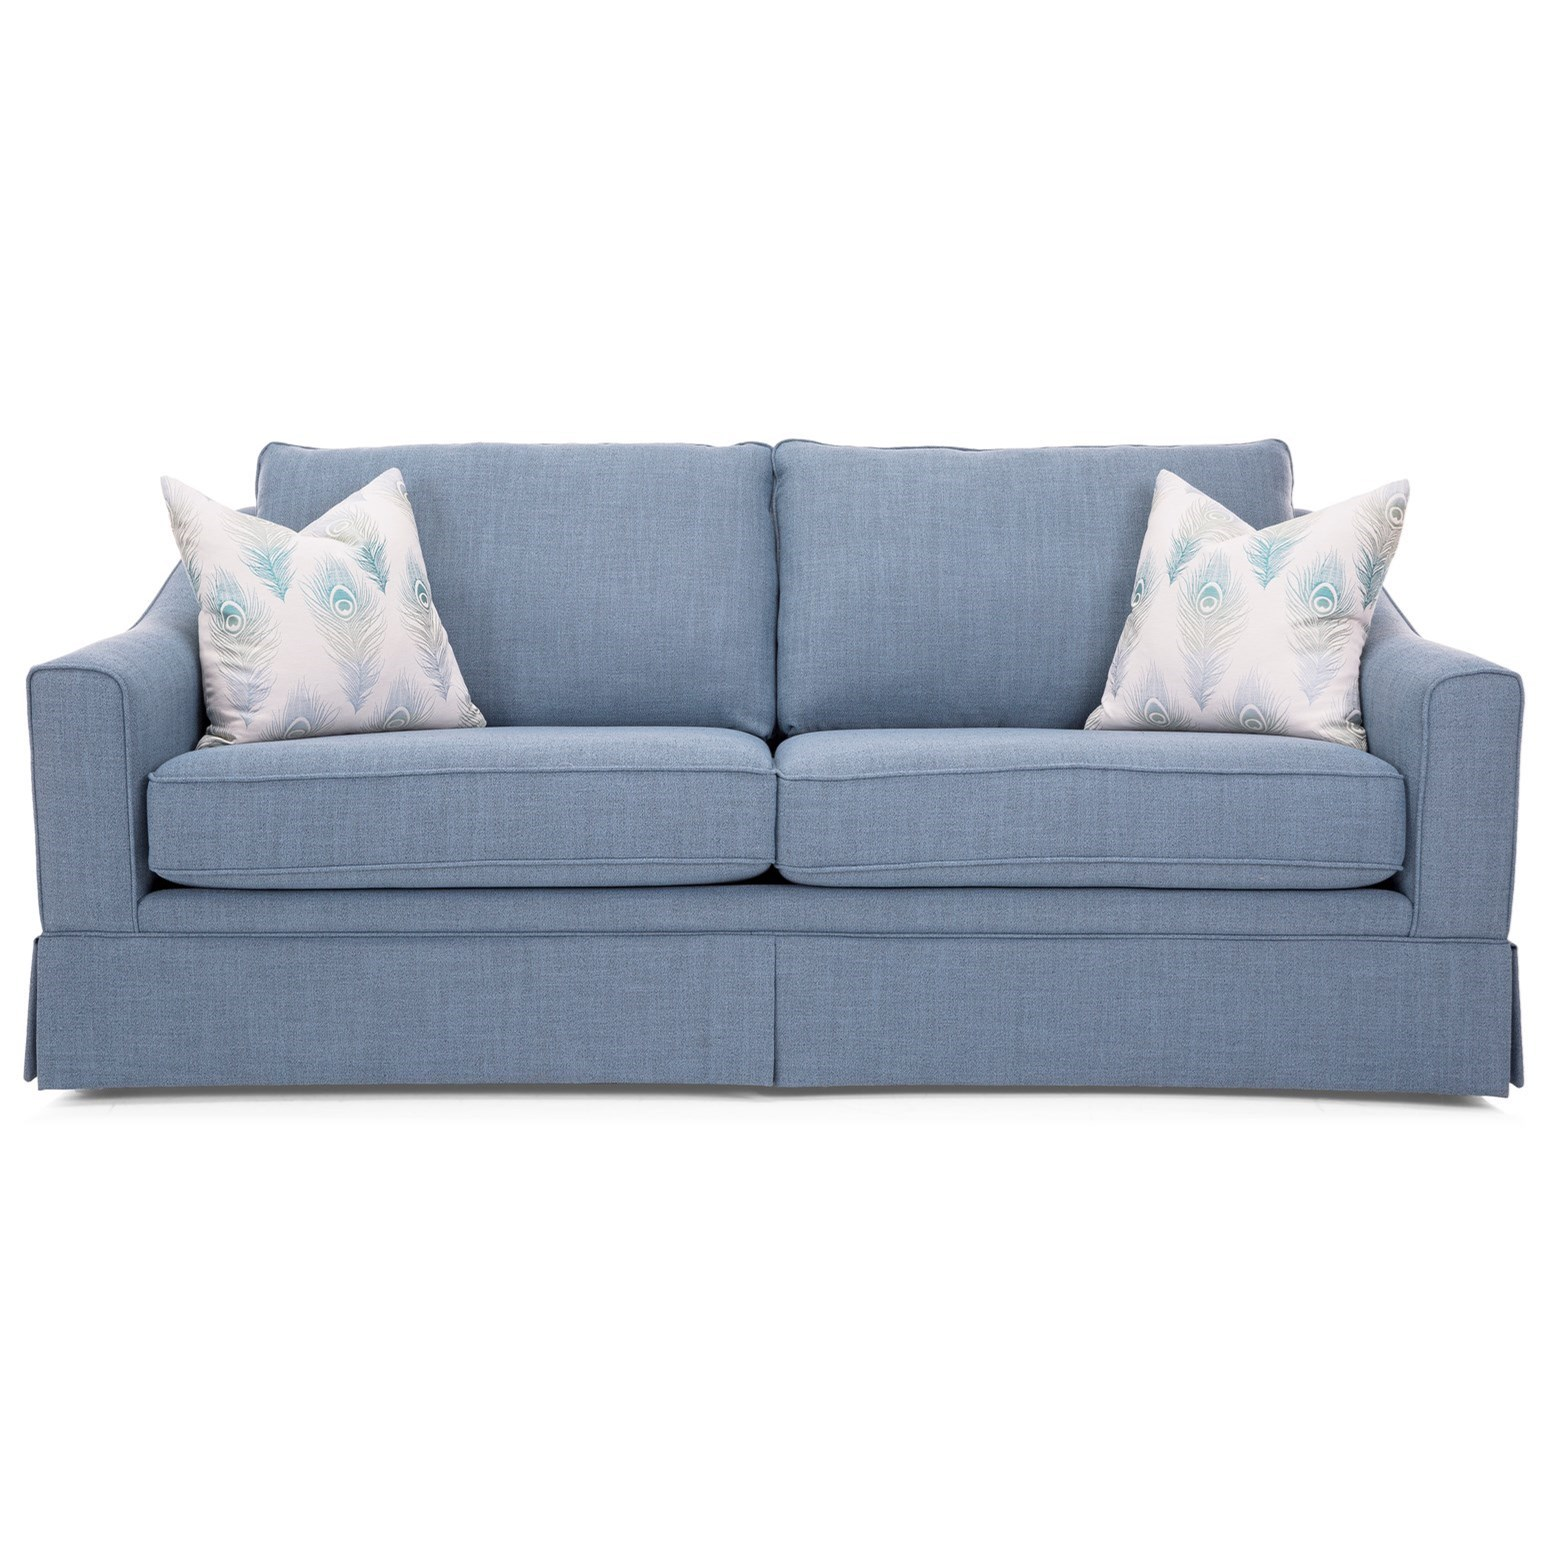 2982 Sofa by Decor-Rest at Rooms for Less